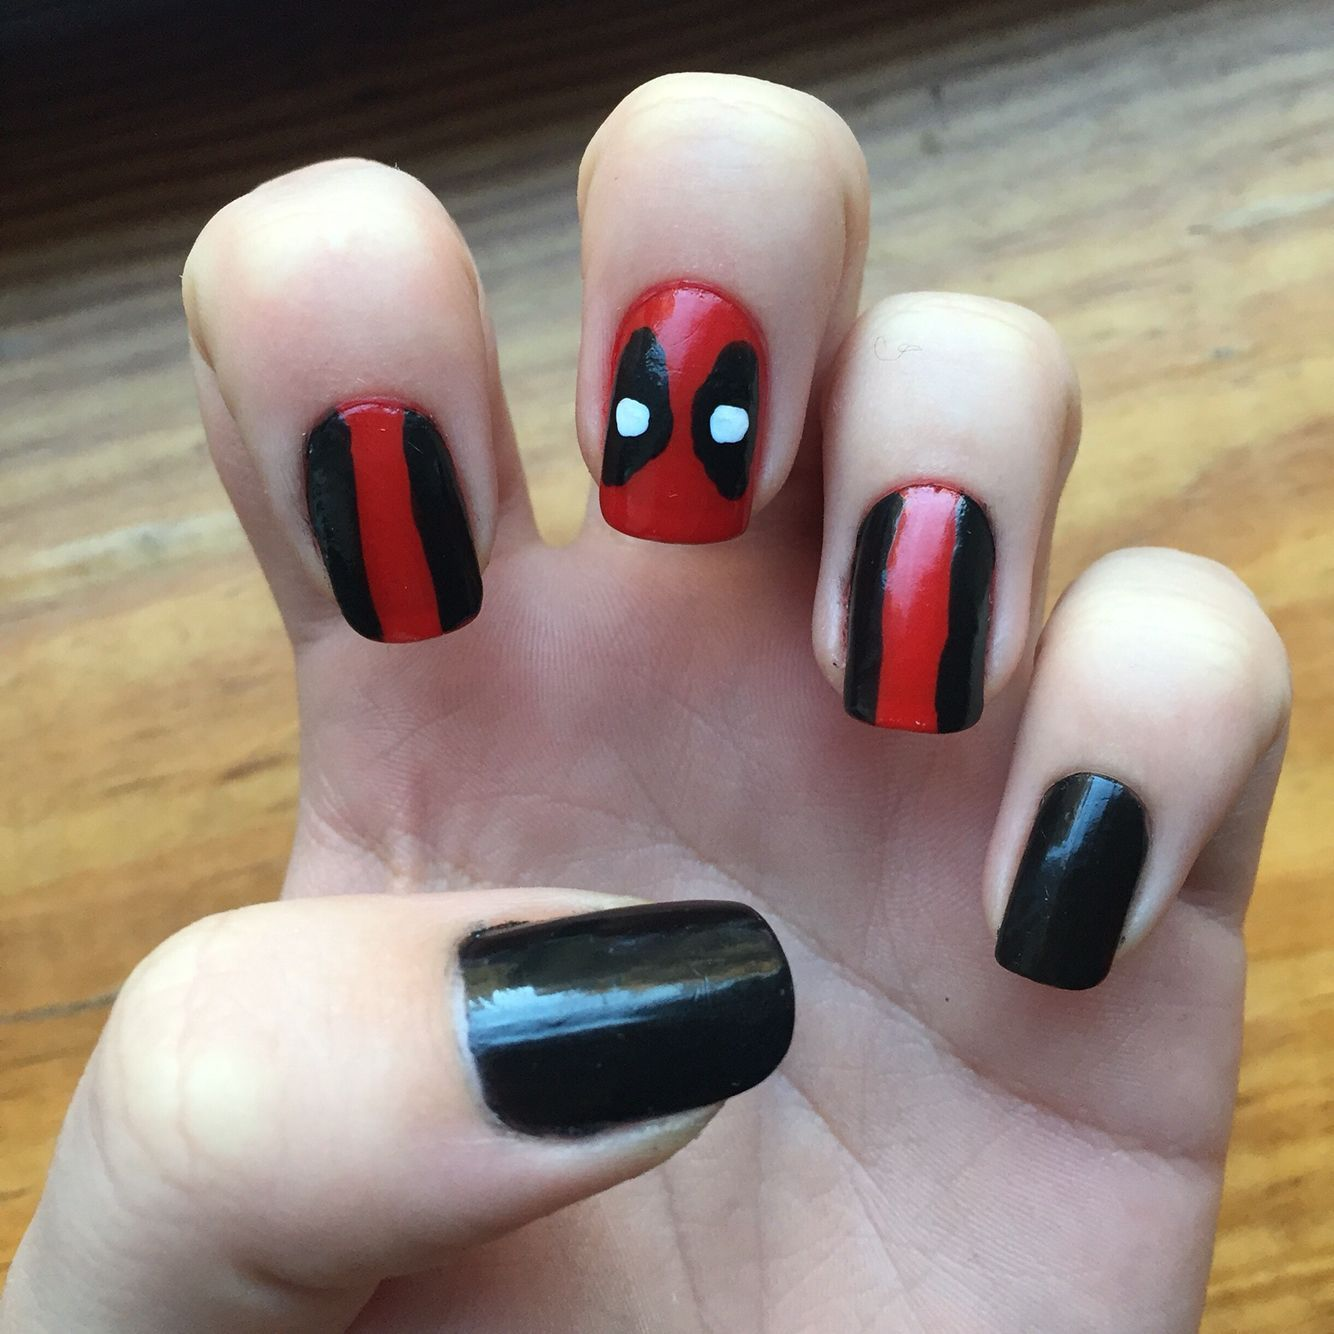 Deadpool nail art #HolidayNails - Deadpool Nail Art #HolidayNails Geek Nails In 2019 Pinterest